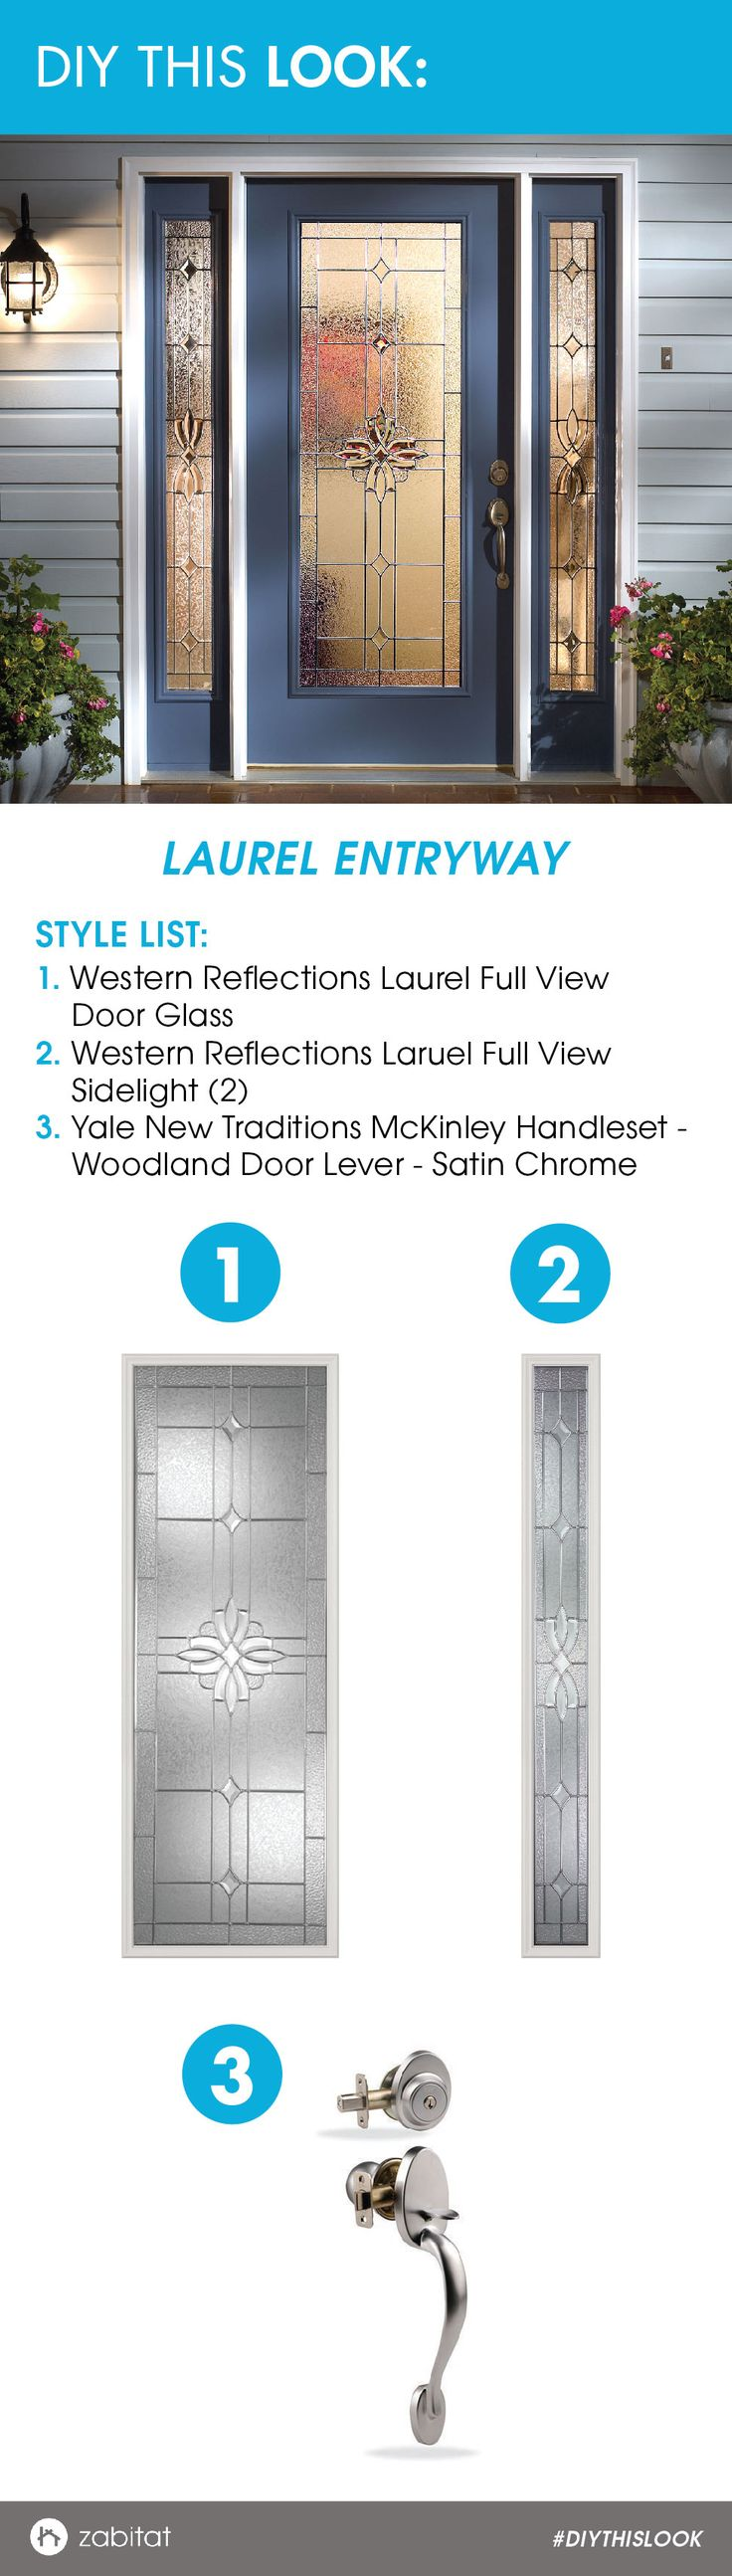 Western Reflections Laurel Door Glass Inserts paired with a Yale Satin Chrome Handleset